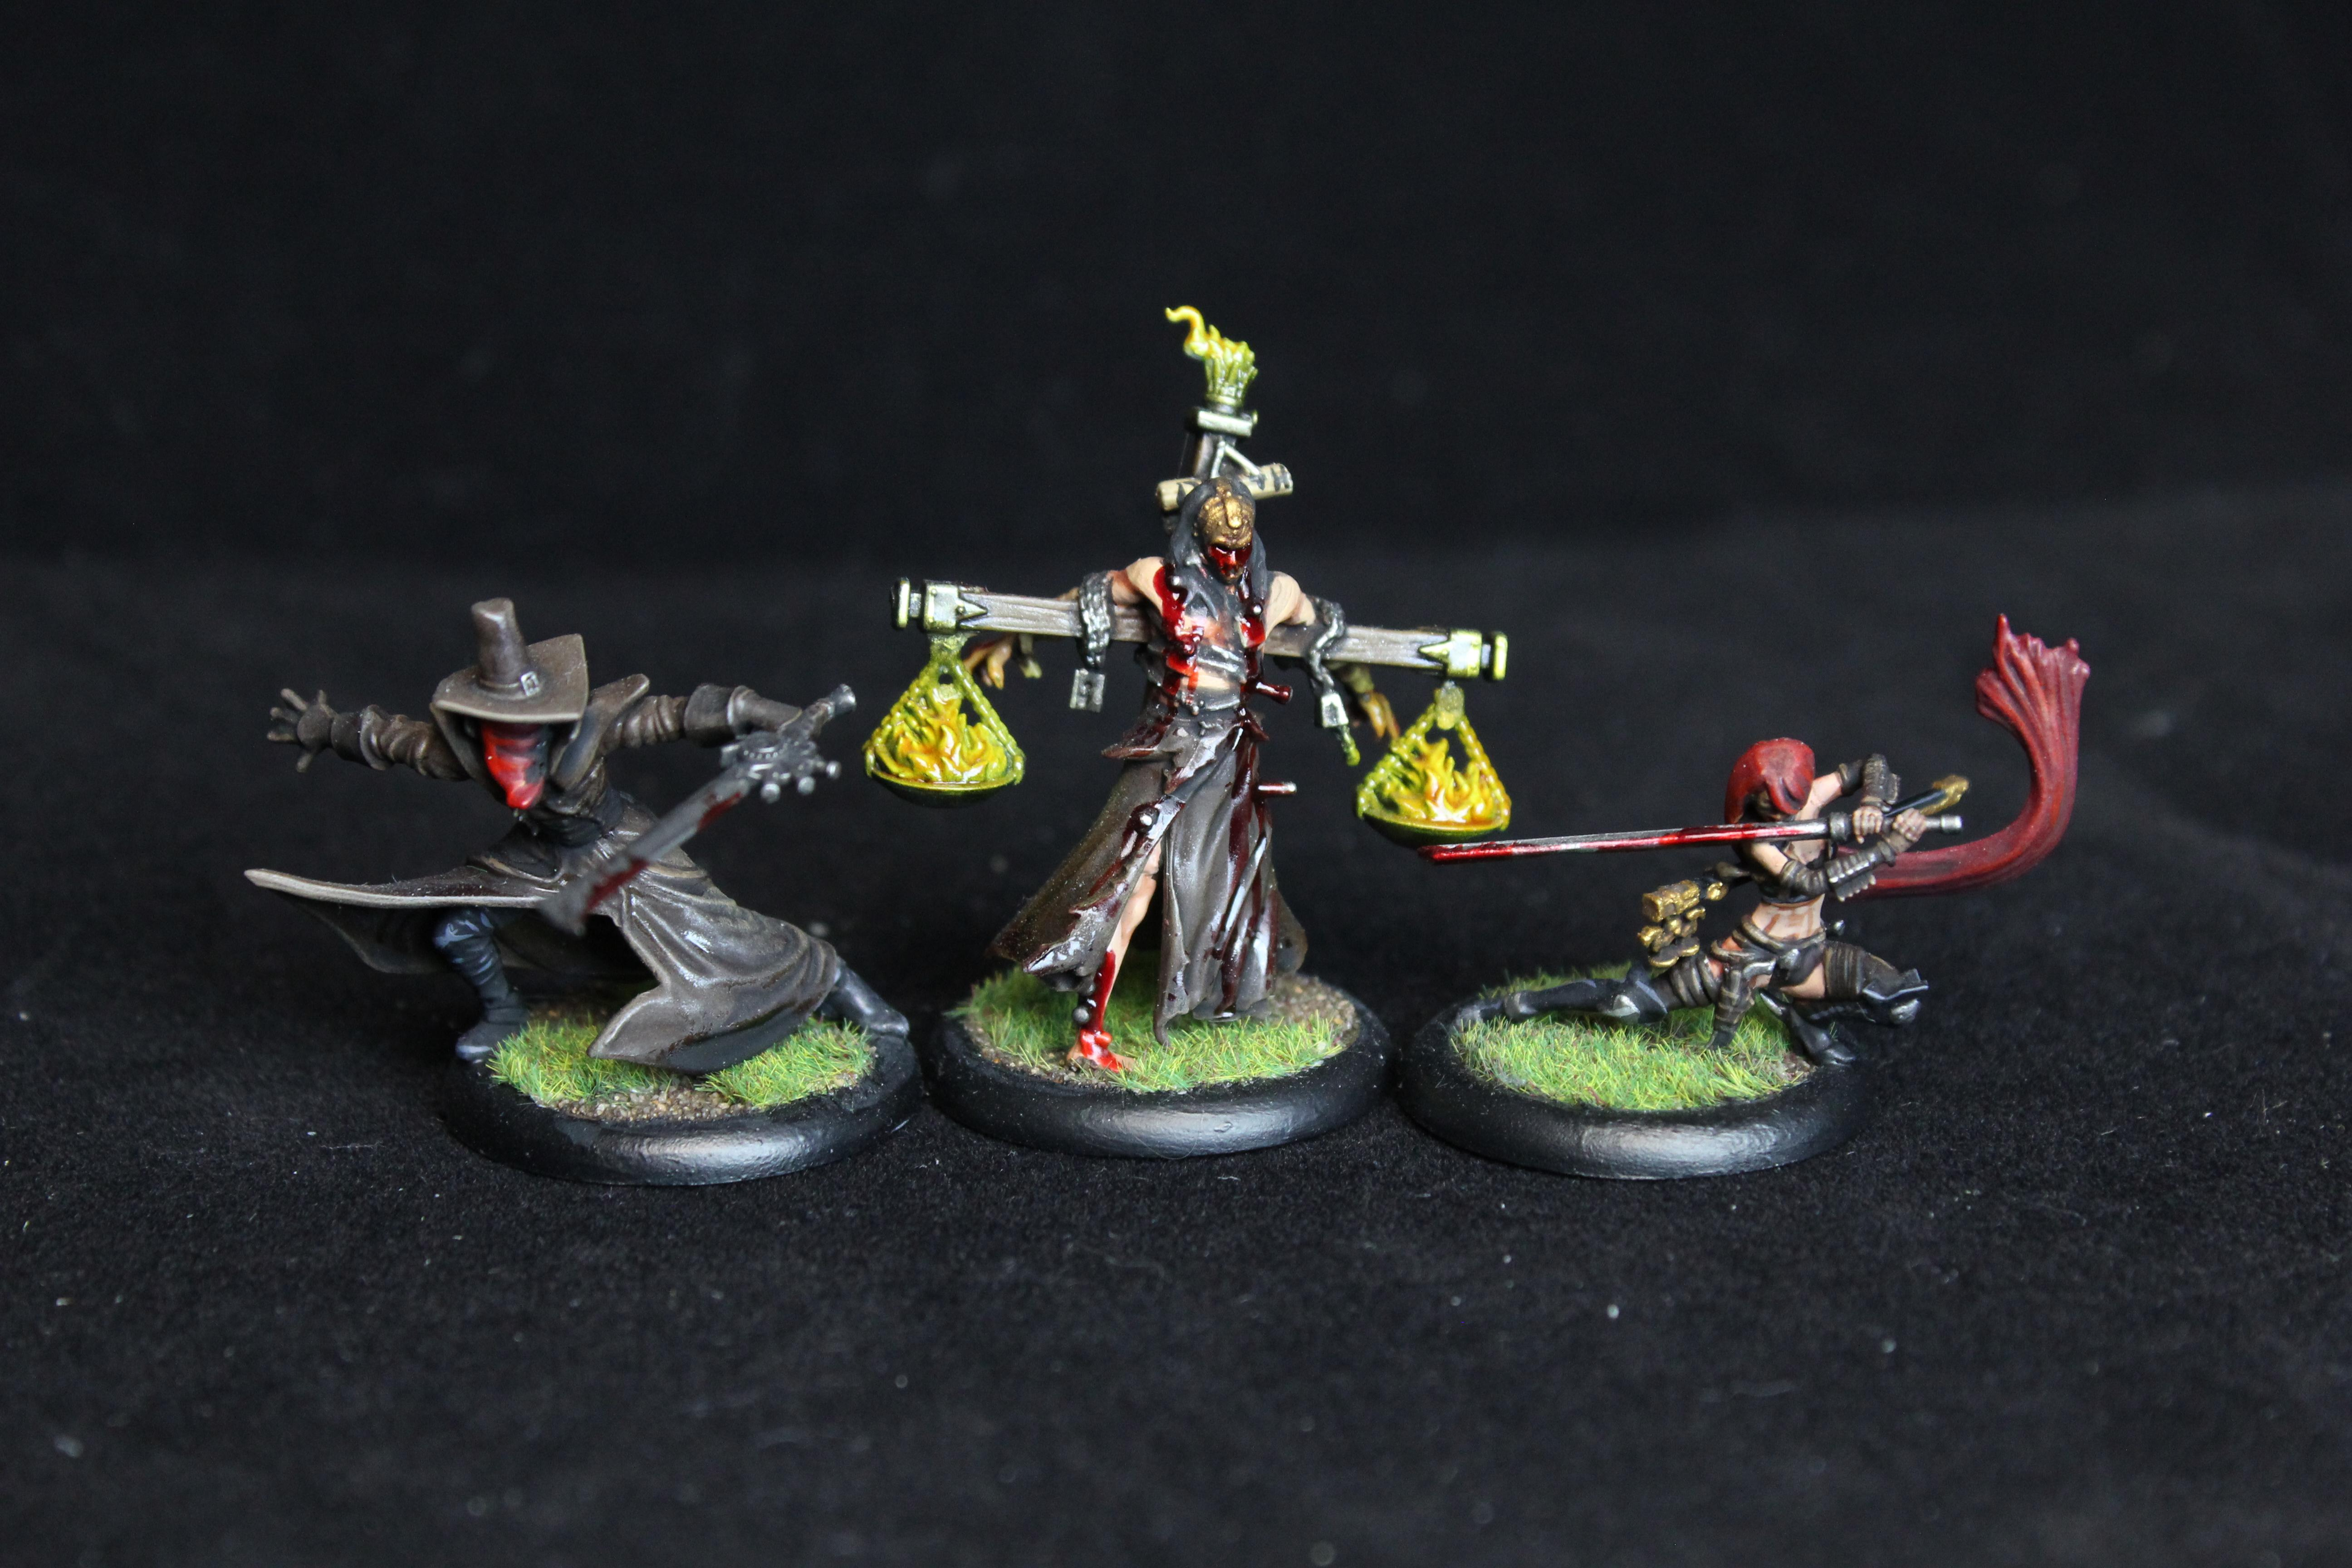 Death Marthal, Guild, Lady Justice, Malifaux, Riflemen